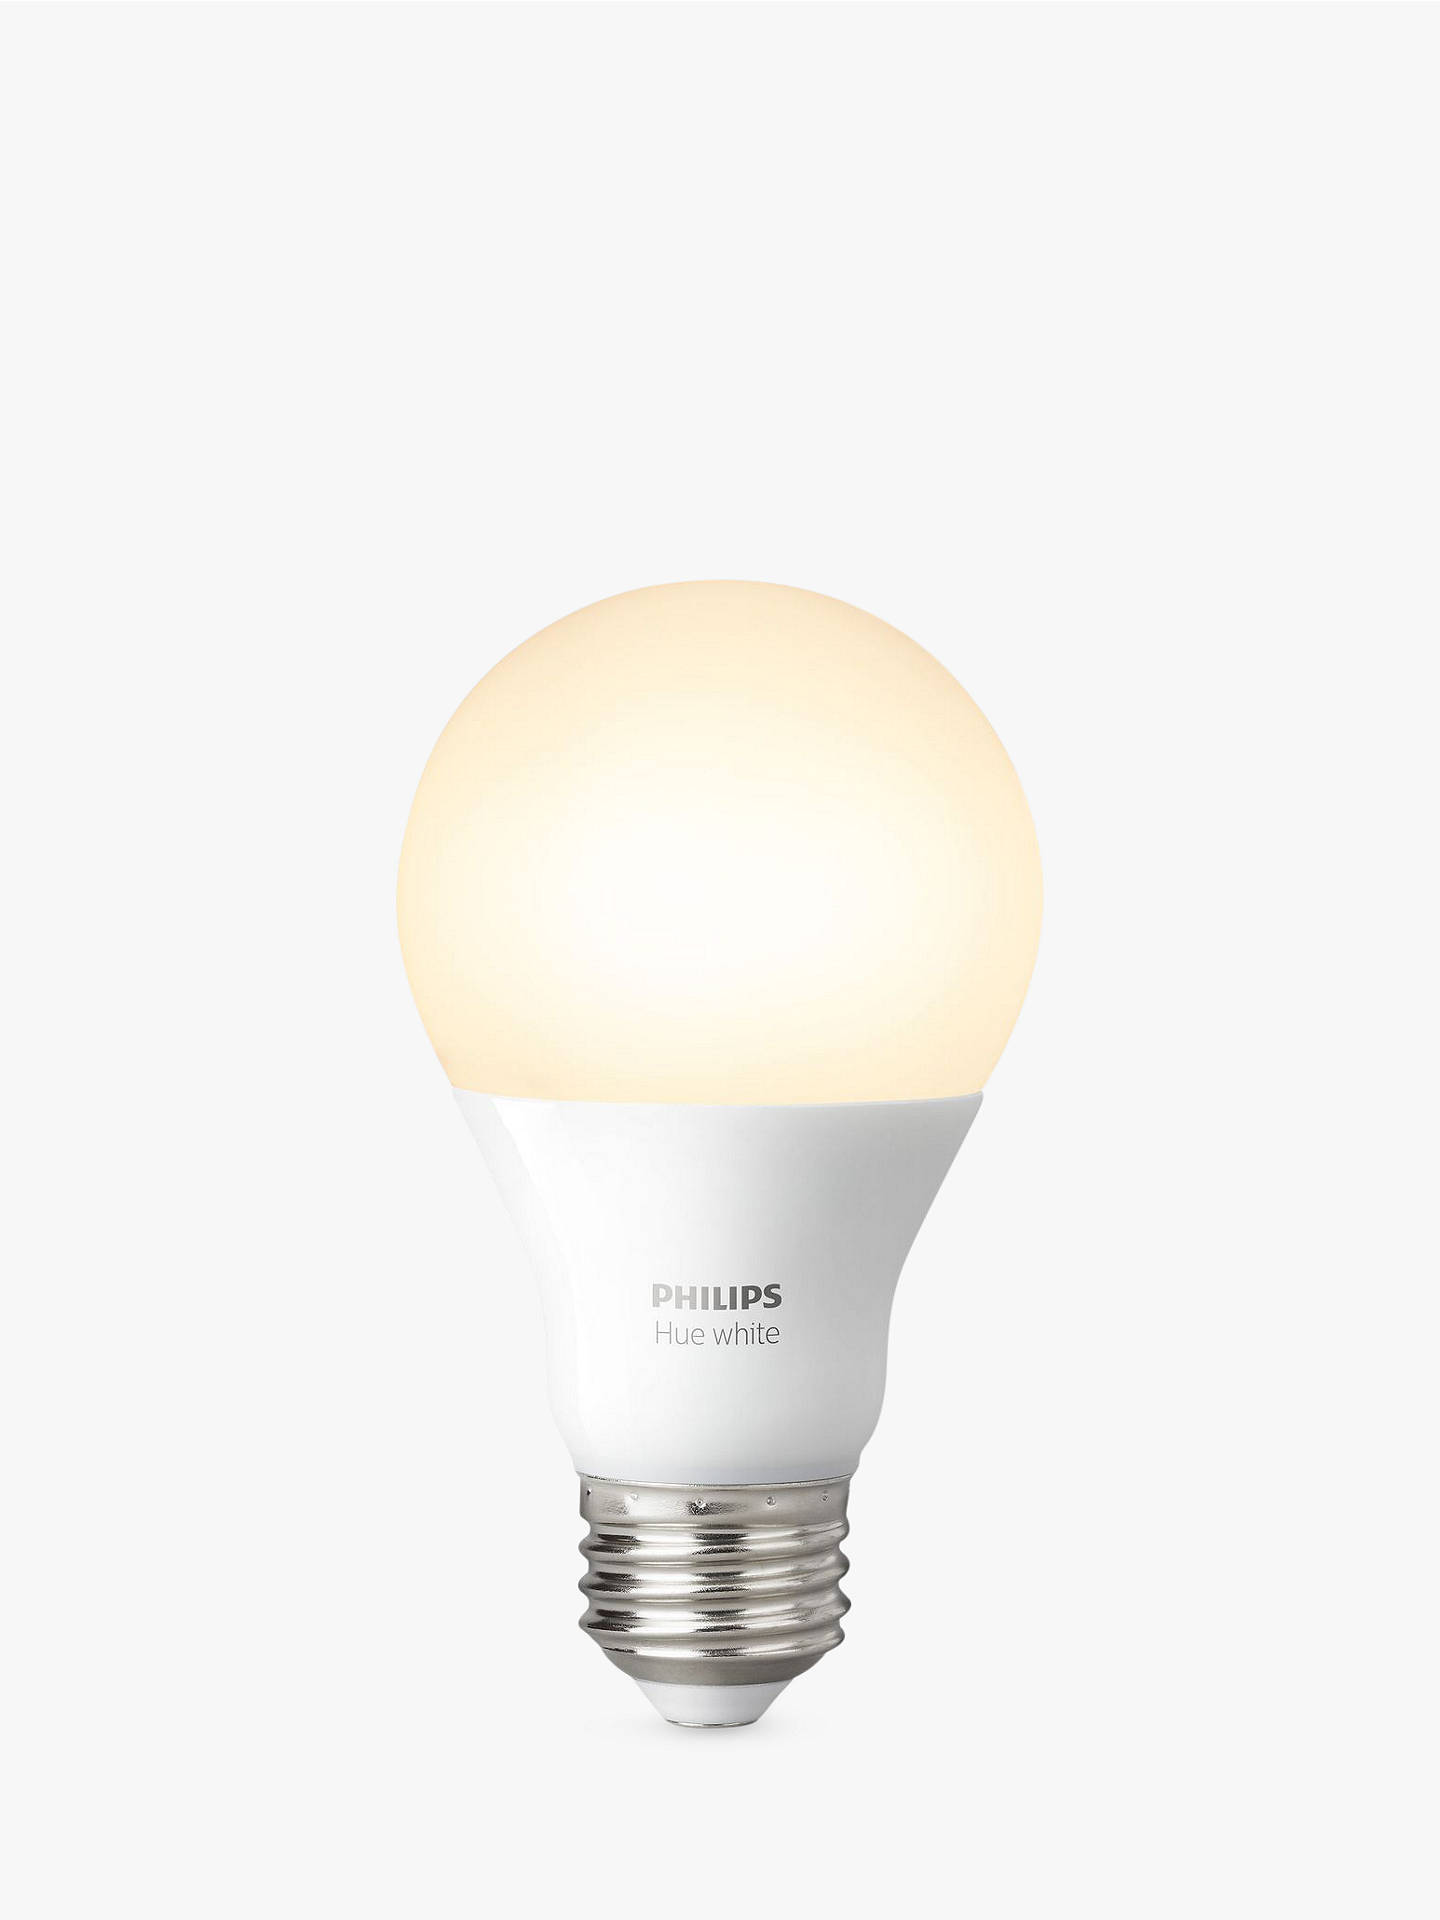 philips hue white 9 5w a60 smart bulb e27 fitting at john. Black Bedroom Furniture Sets. Home Design Ideas